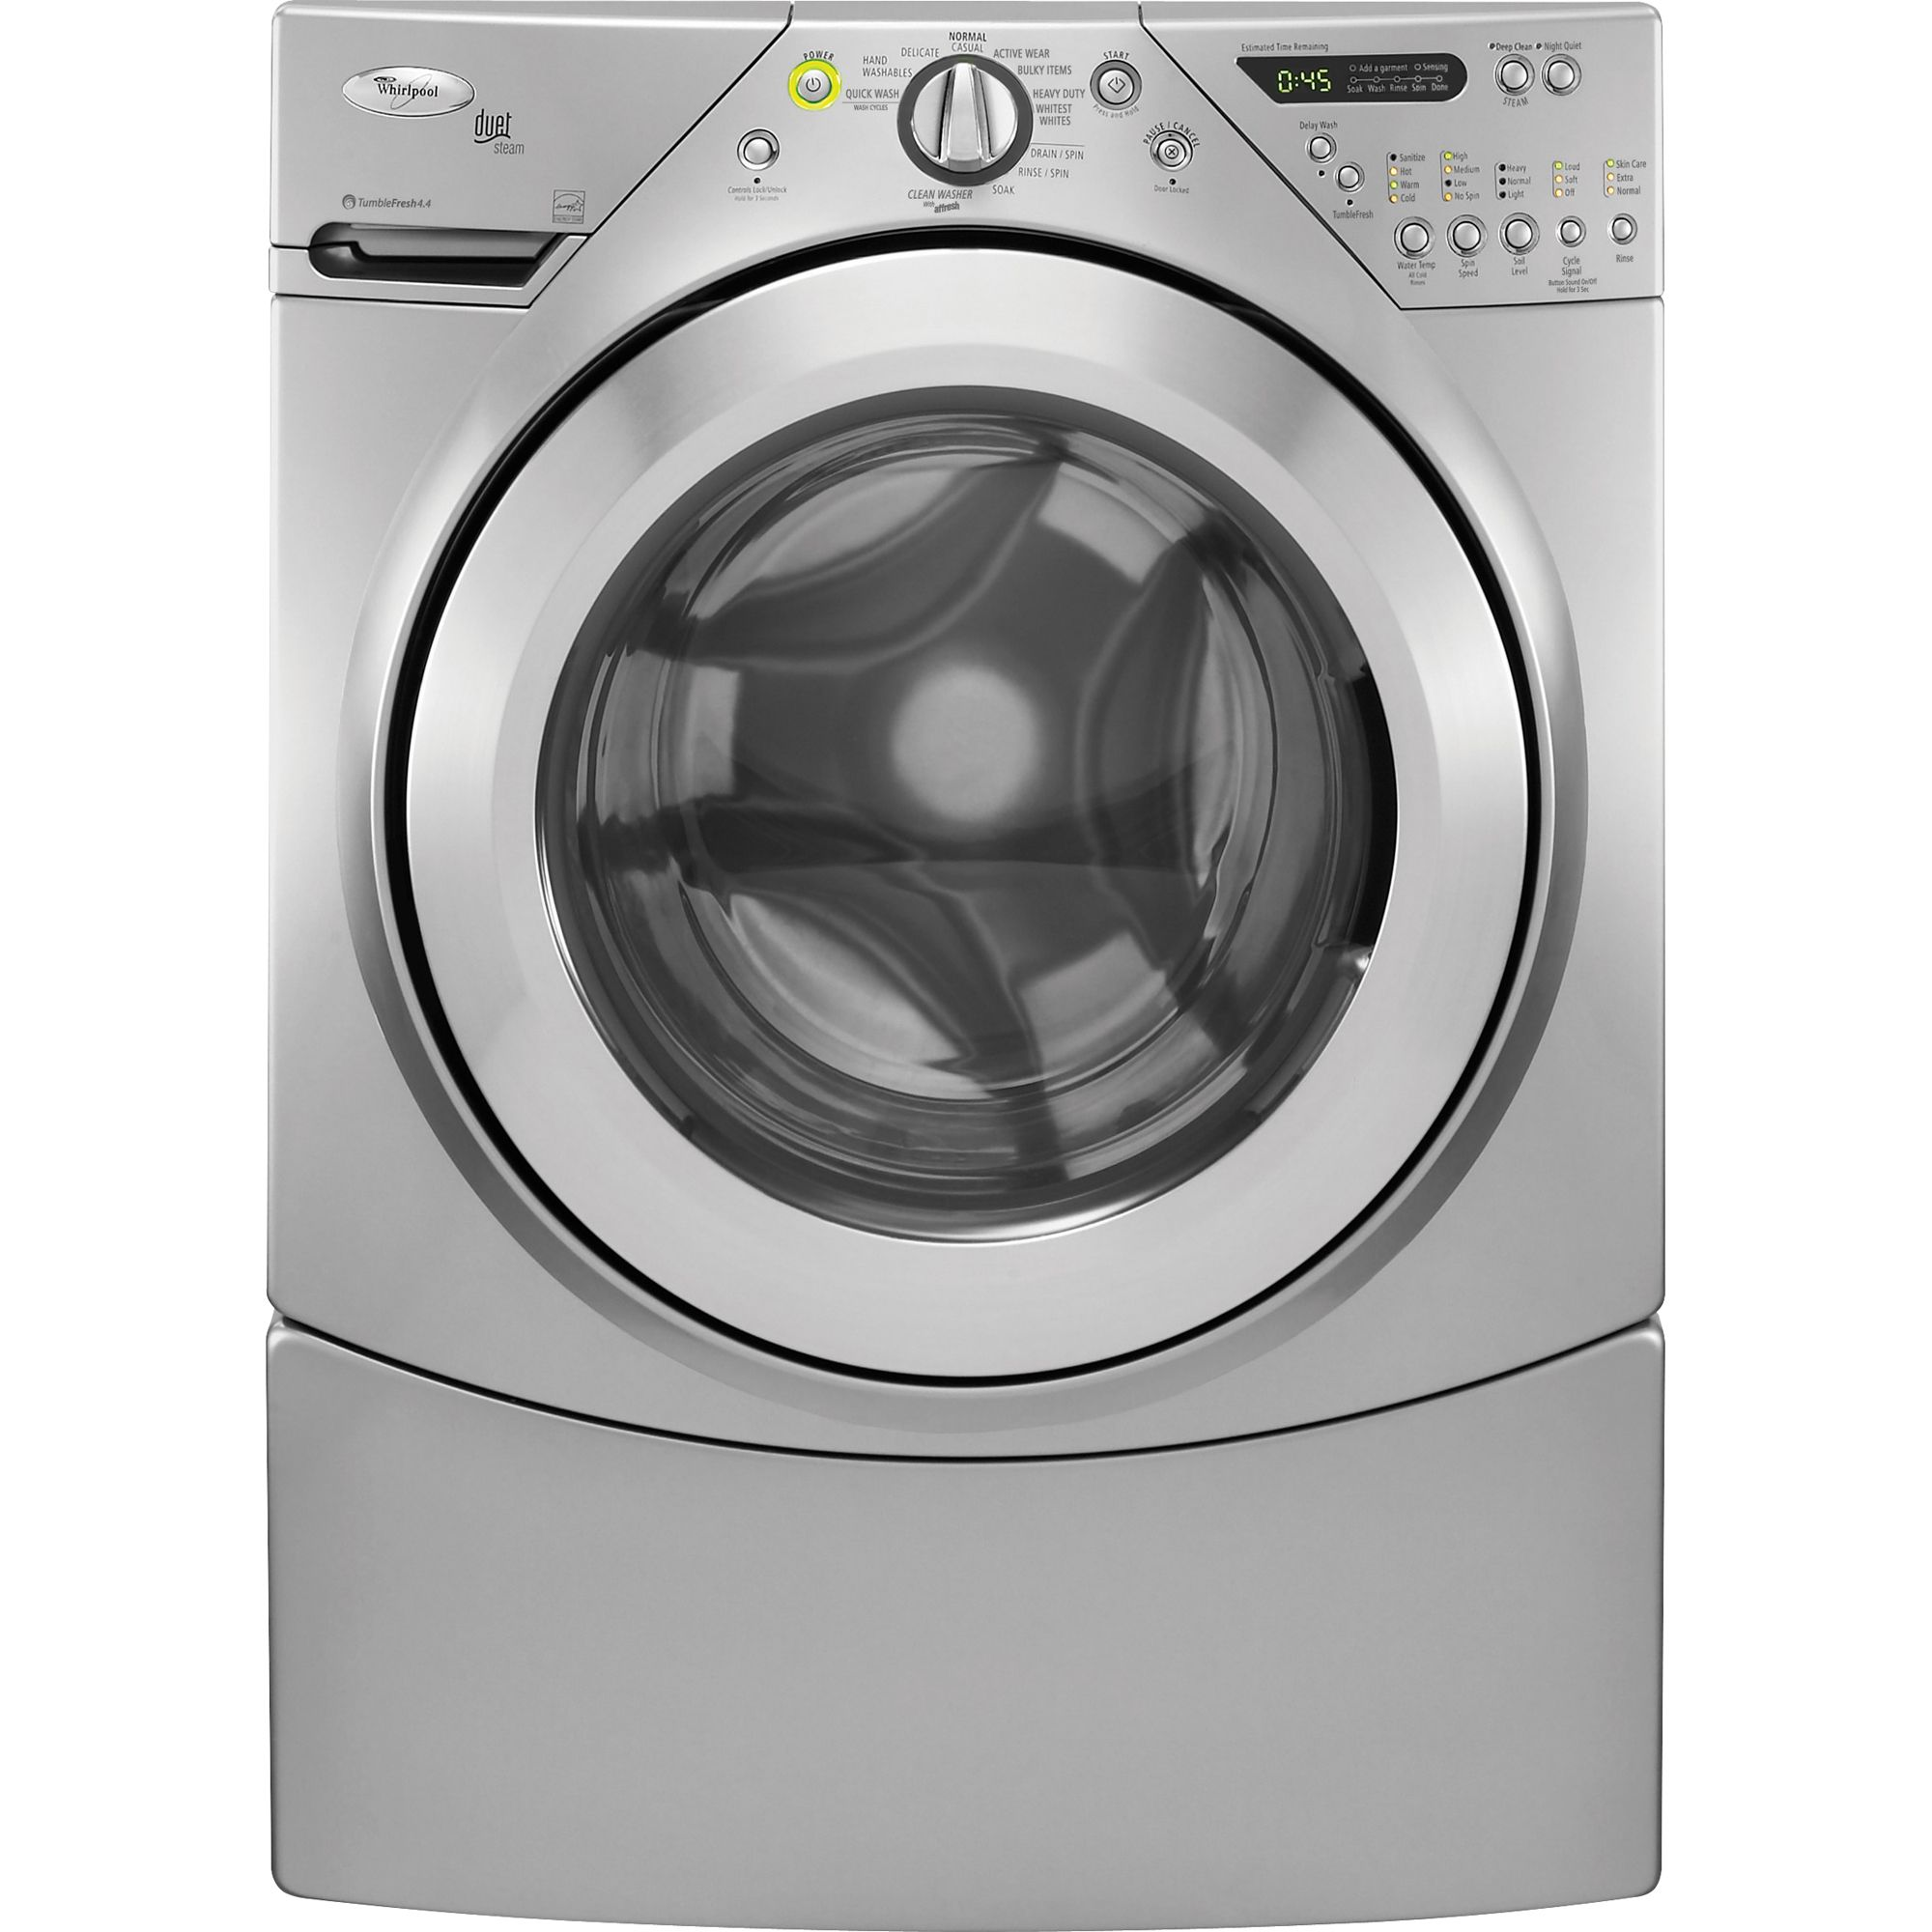 whirlpool duet washer troubleshooting guide